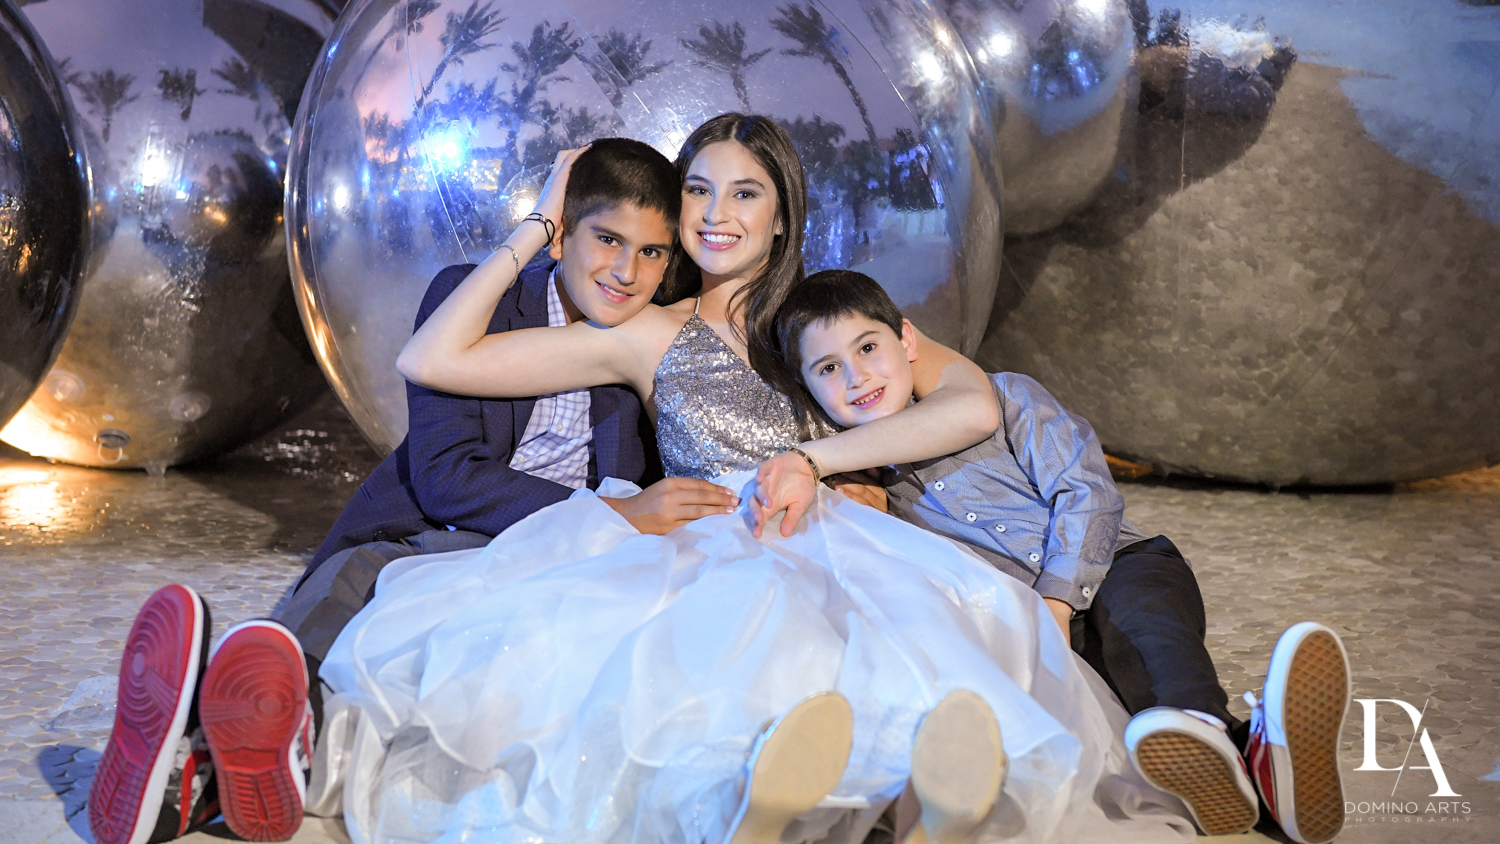 sibling portrait at Trendy Decor Bat Mitzvah at St Andrews Country Club by Domino Arts Photography